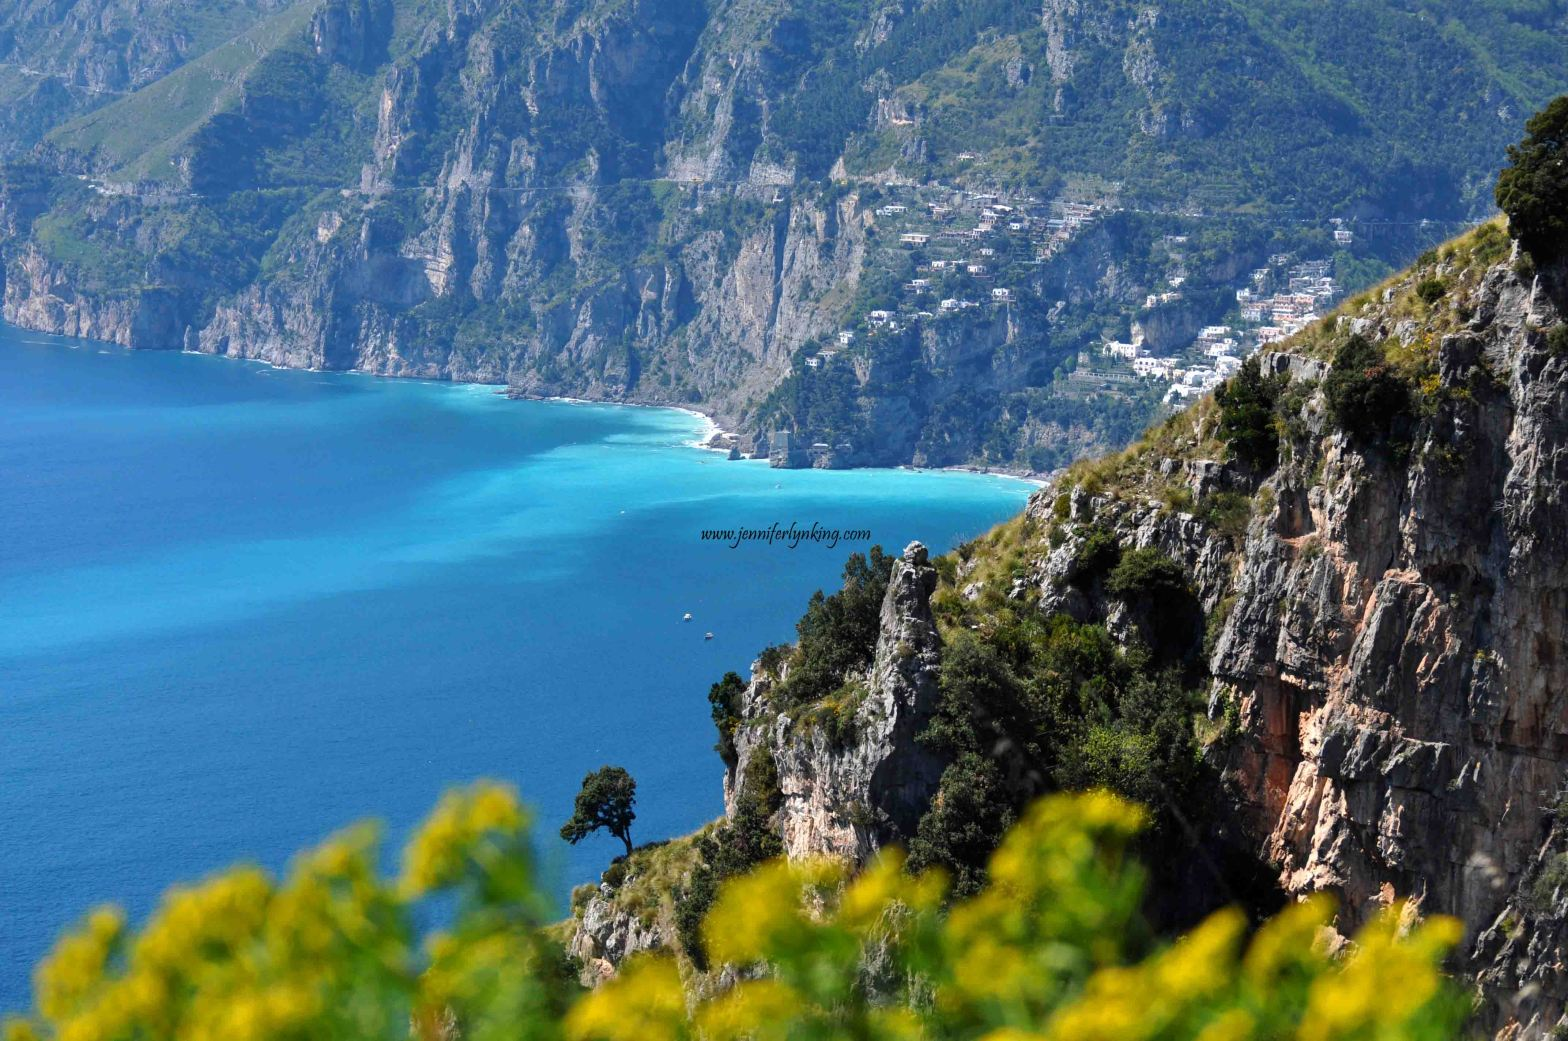 Italy's Amalfi coast from a hike along the Trail of the Gods